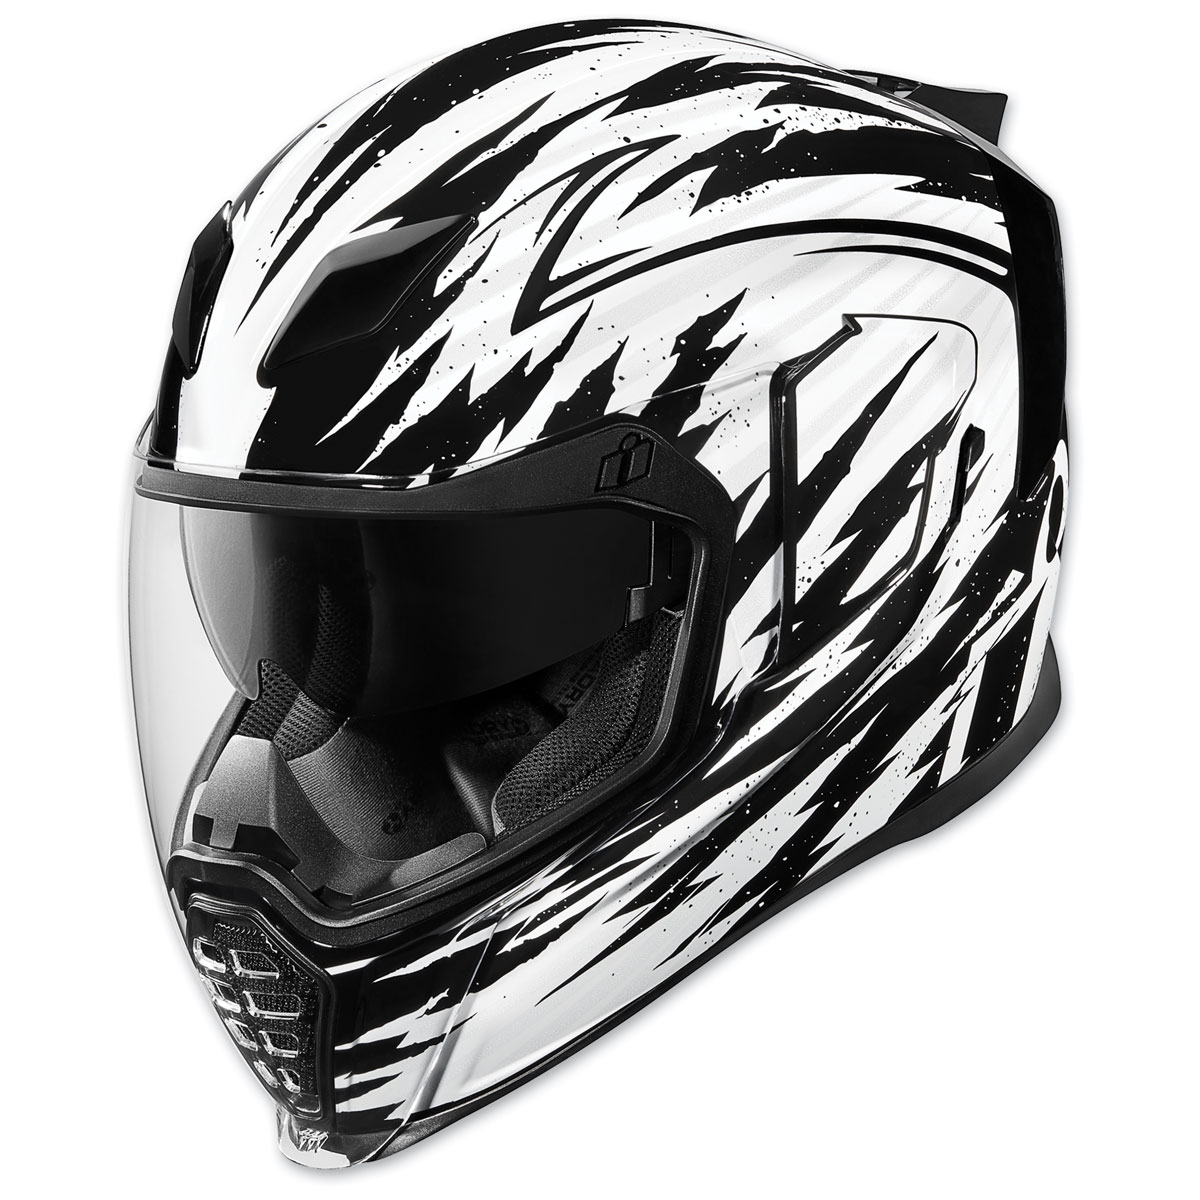 ICON Airflite Fayder White Full Face Helmet